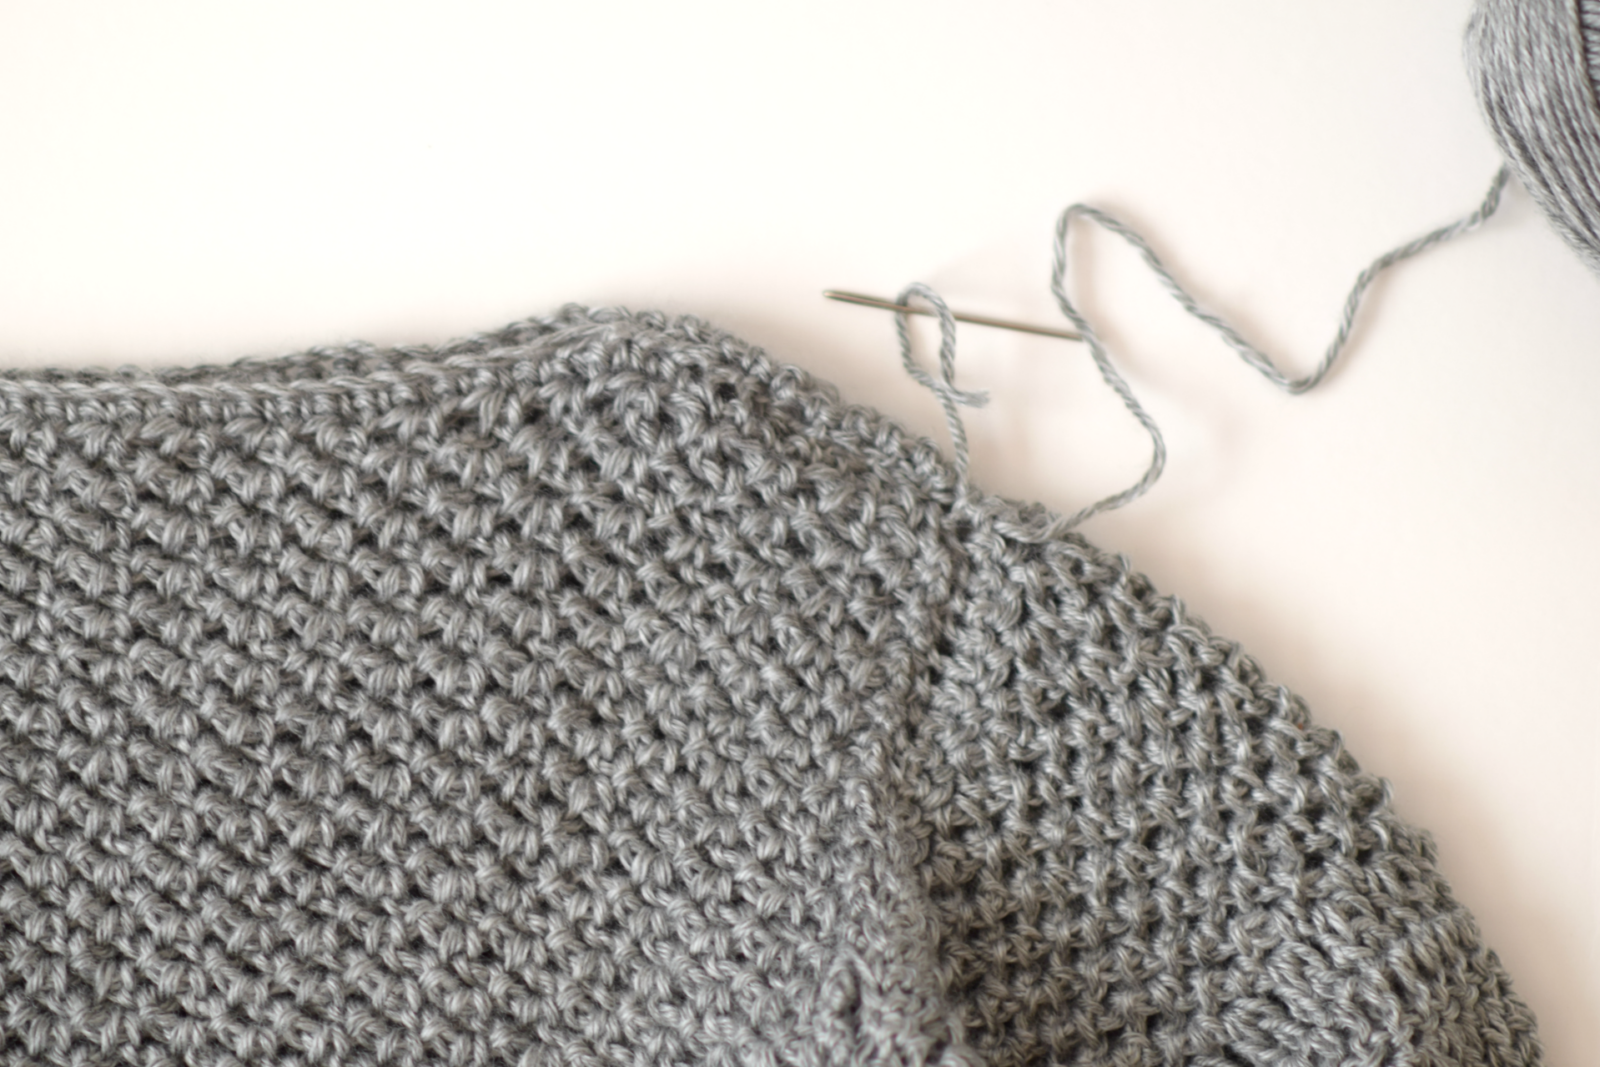 How To Make An Easy Crocheted Sweater (Knit-Like) – Mama In A Stitch